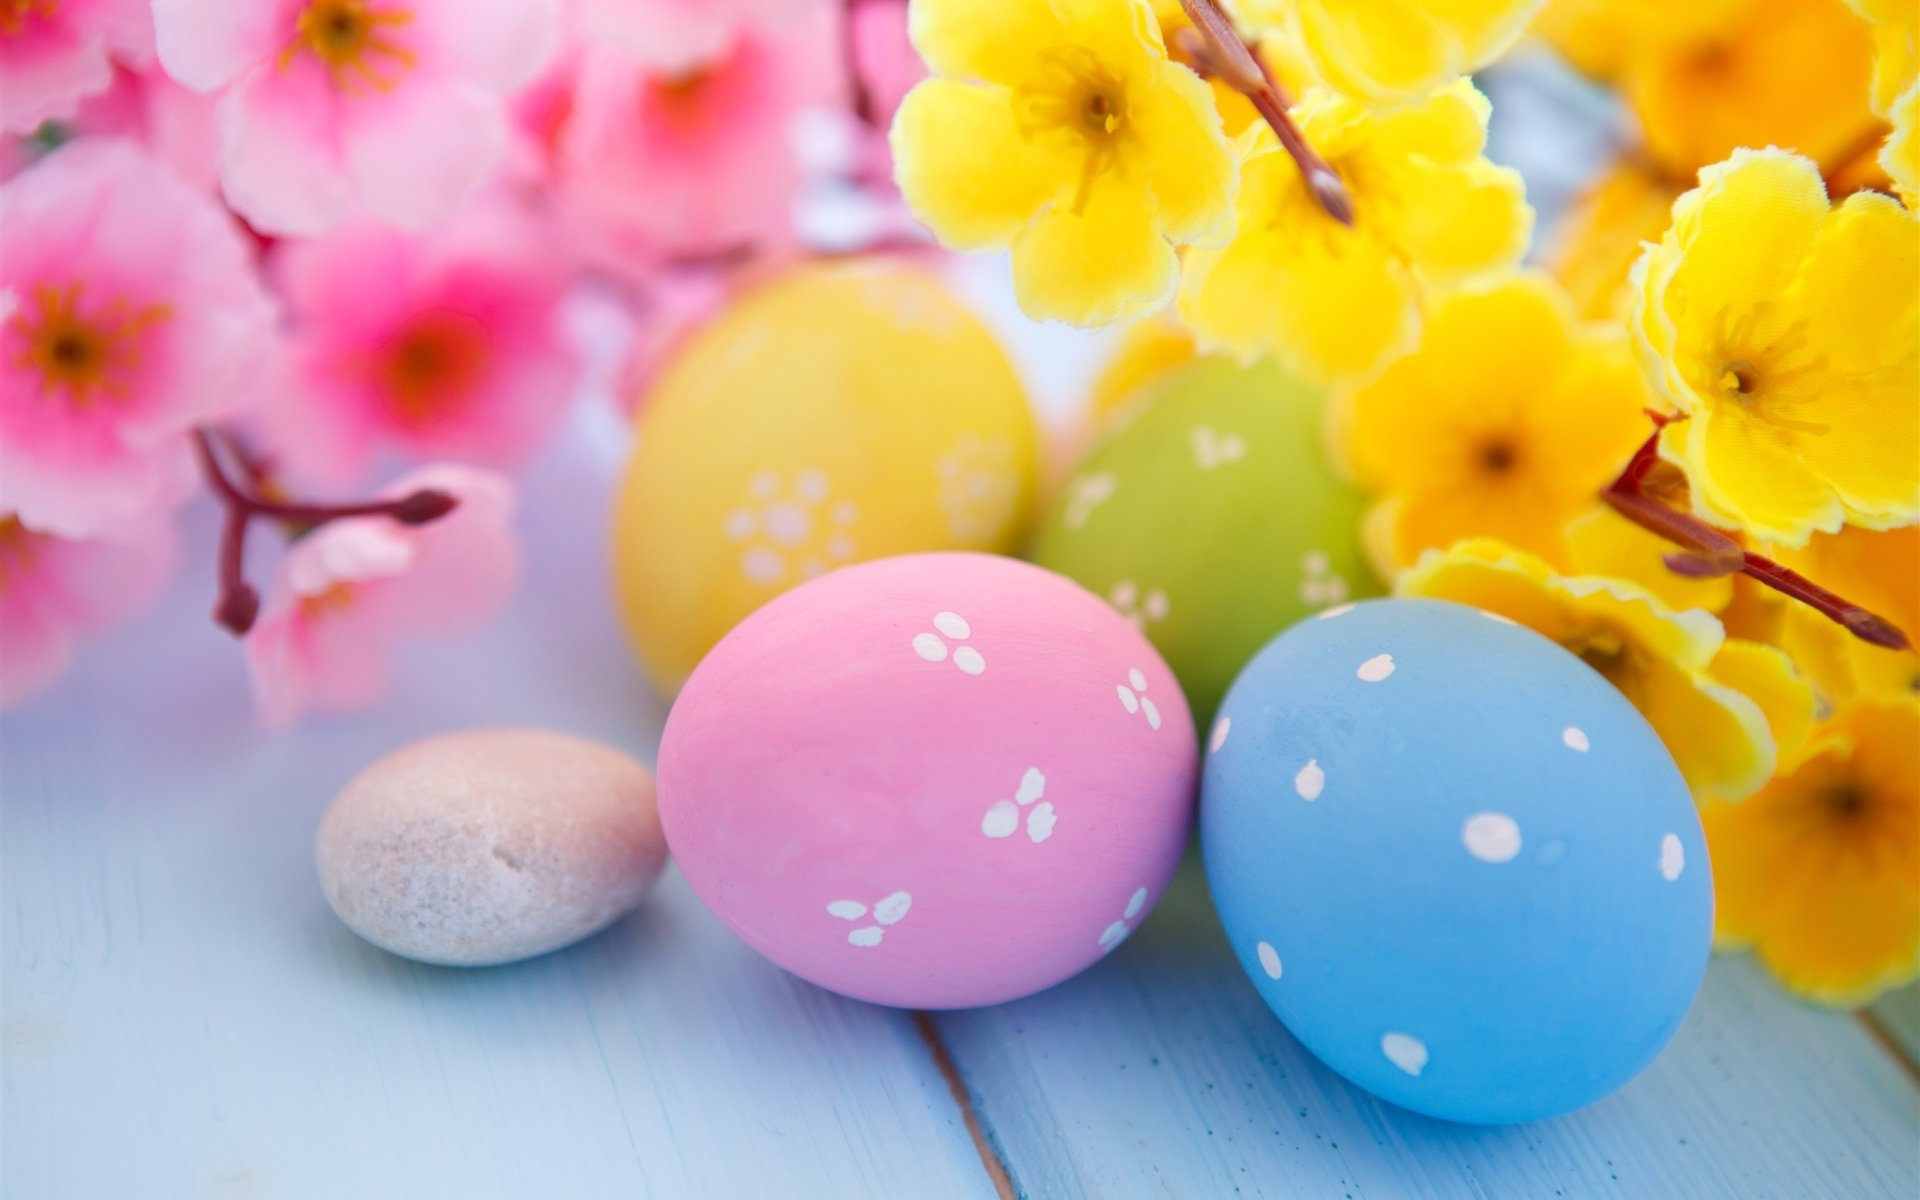 Holiday - Easter  Holiday Easter Egg Egg Colors Colorful Blossom Yellow Flower Pink Flower Wallpaper